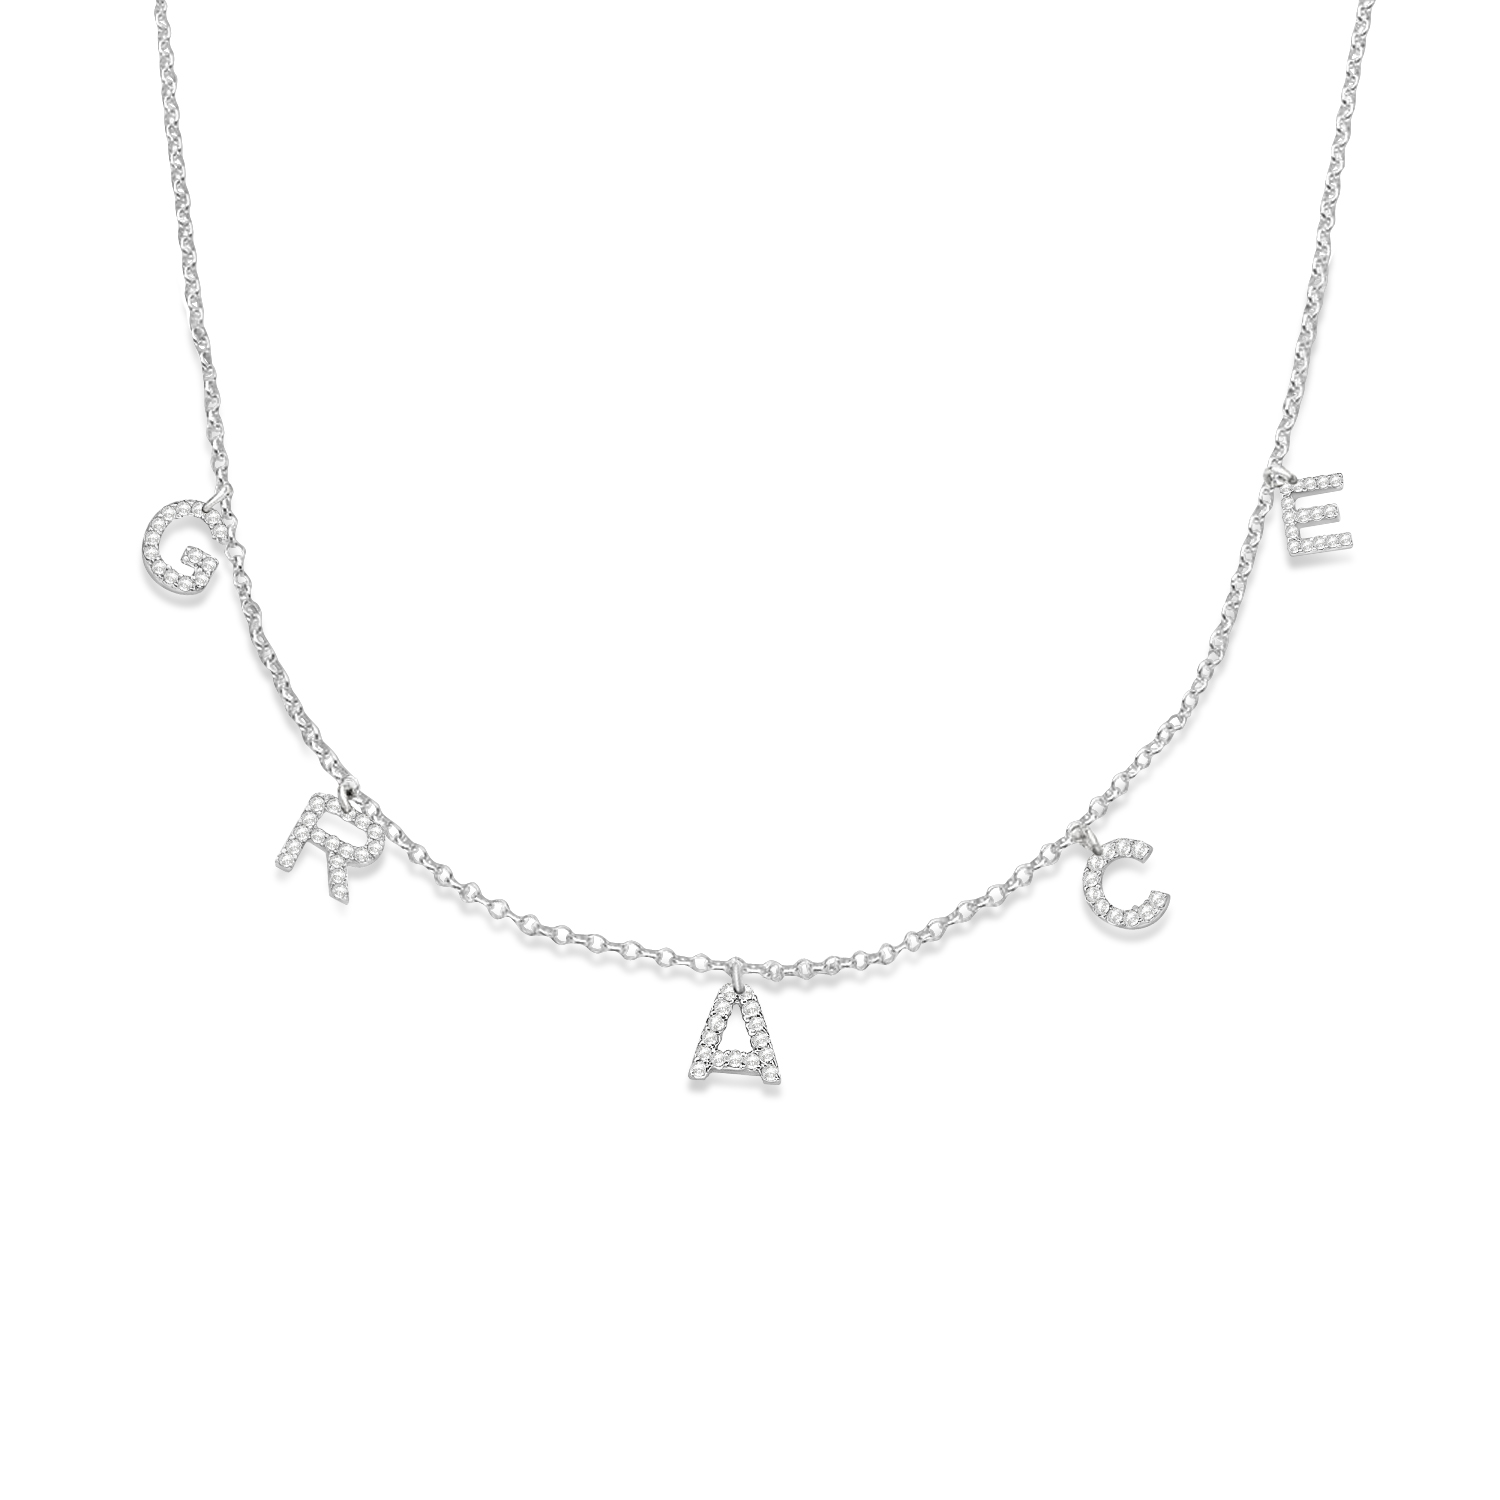 Petite Pave Diamond Multi Initial Pendant Necklace 14k White Gold